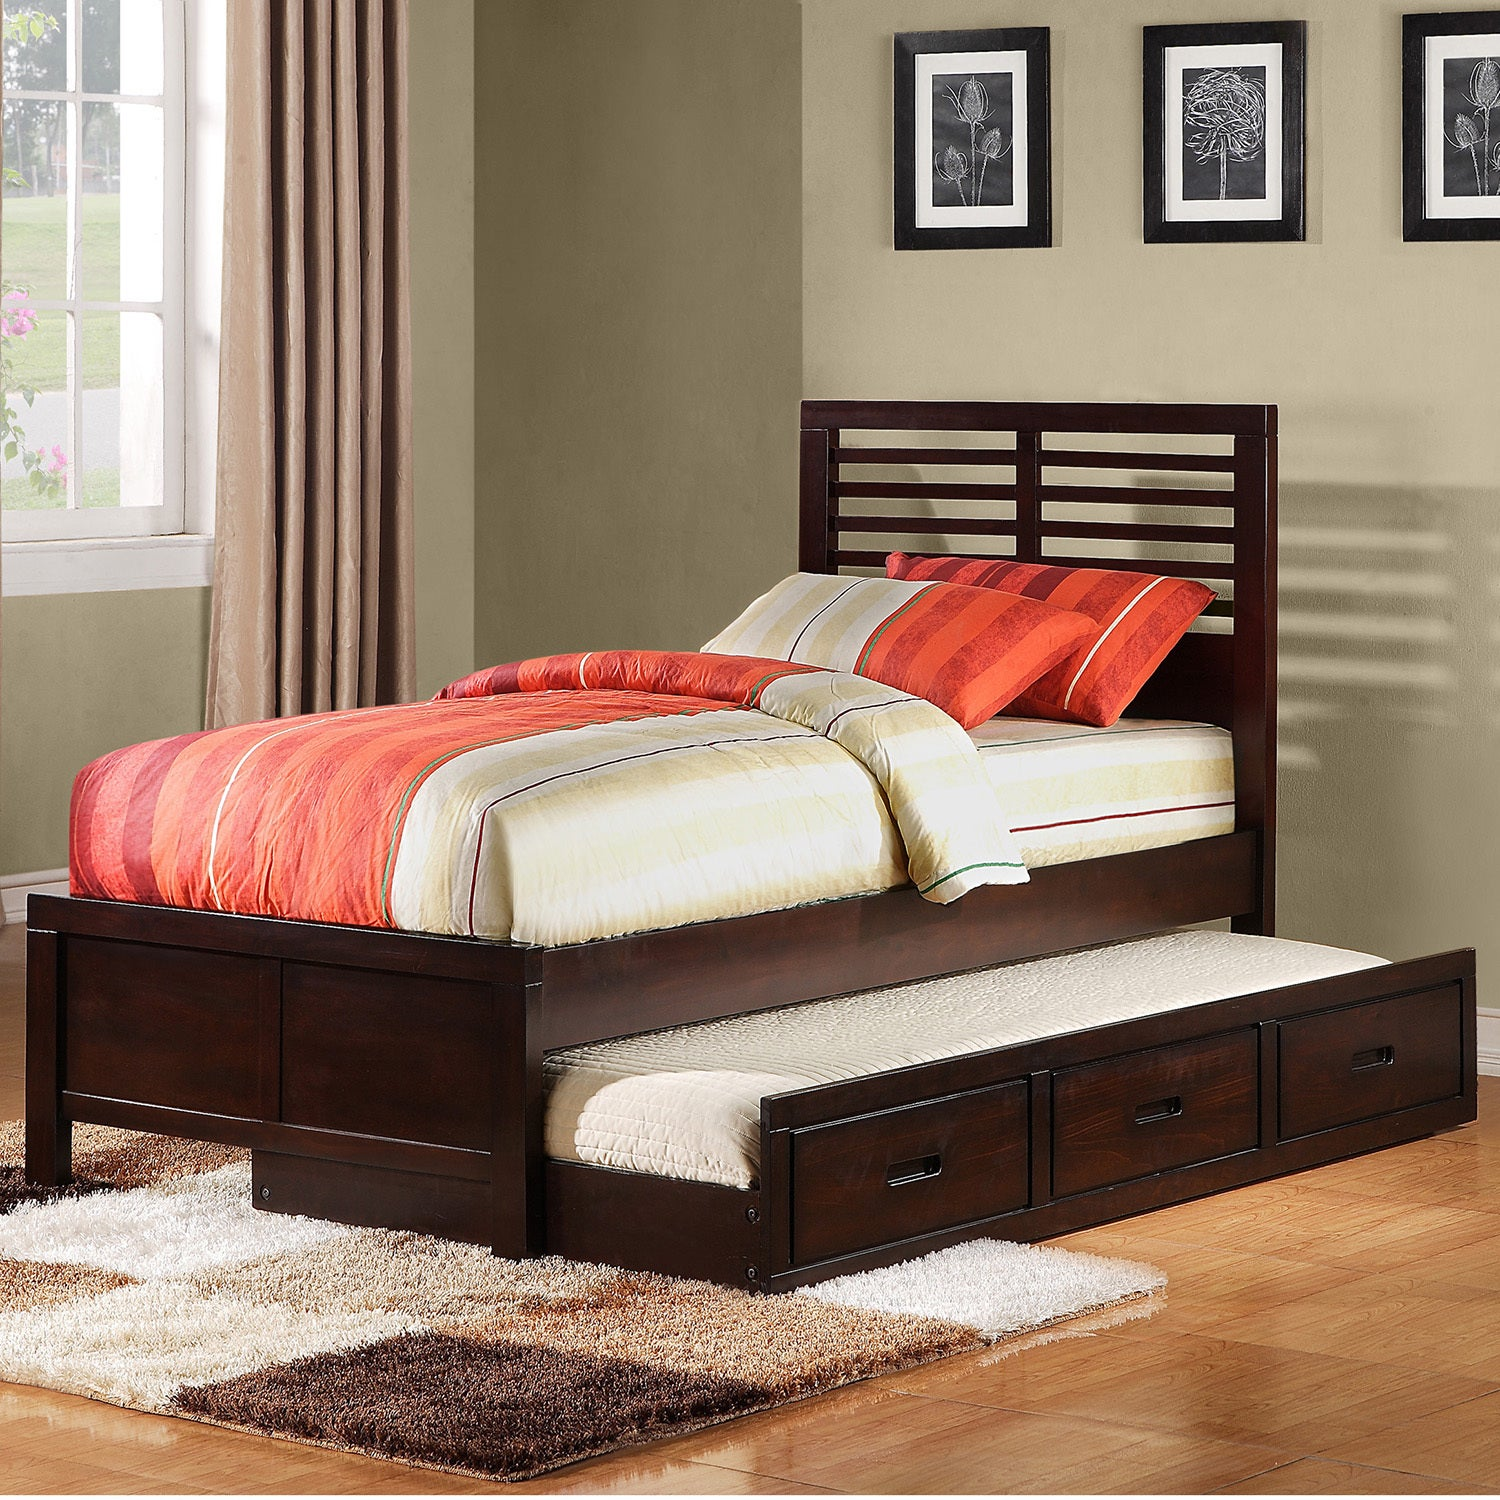 Shop TRIBECCA HOME Ferris Cherry Full size Platform Bed with